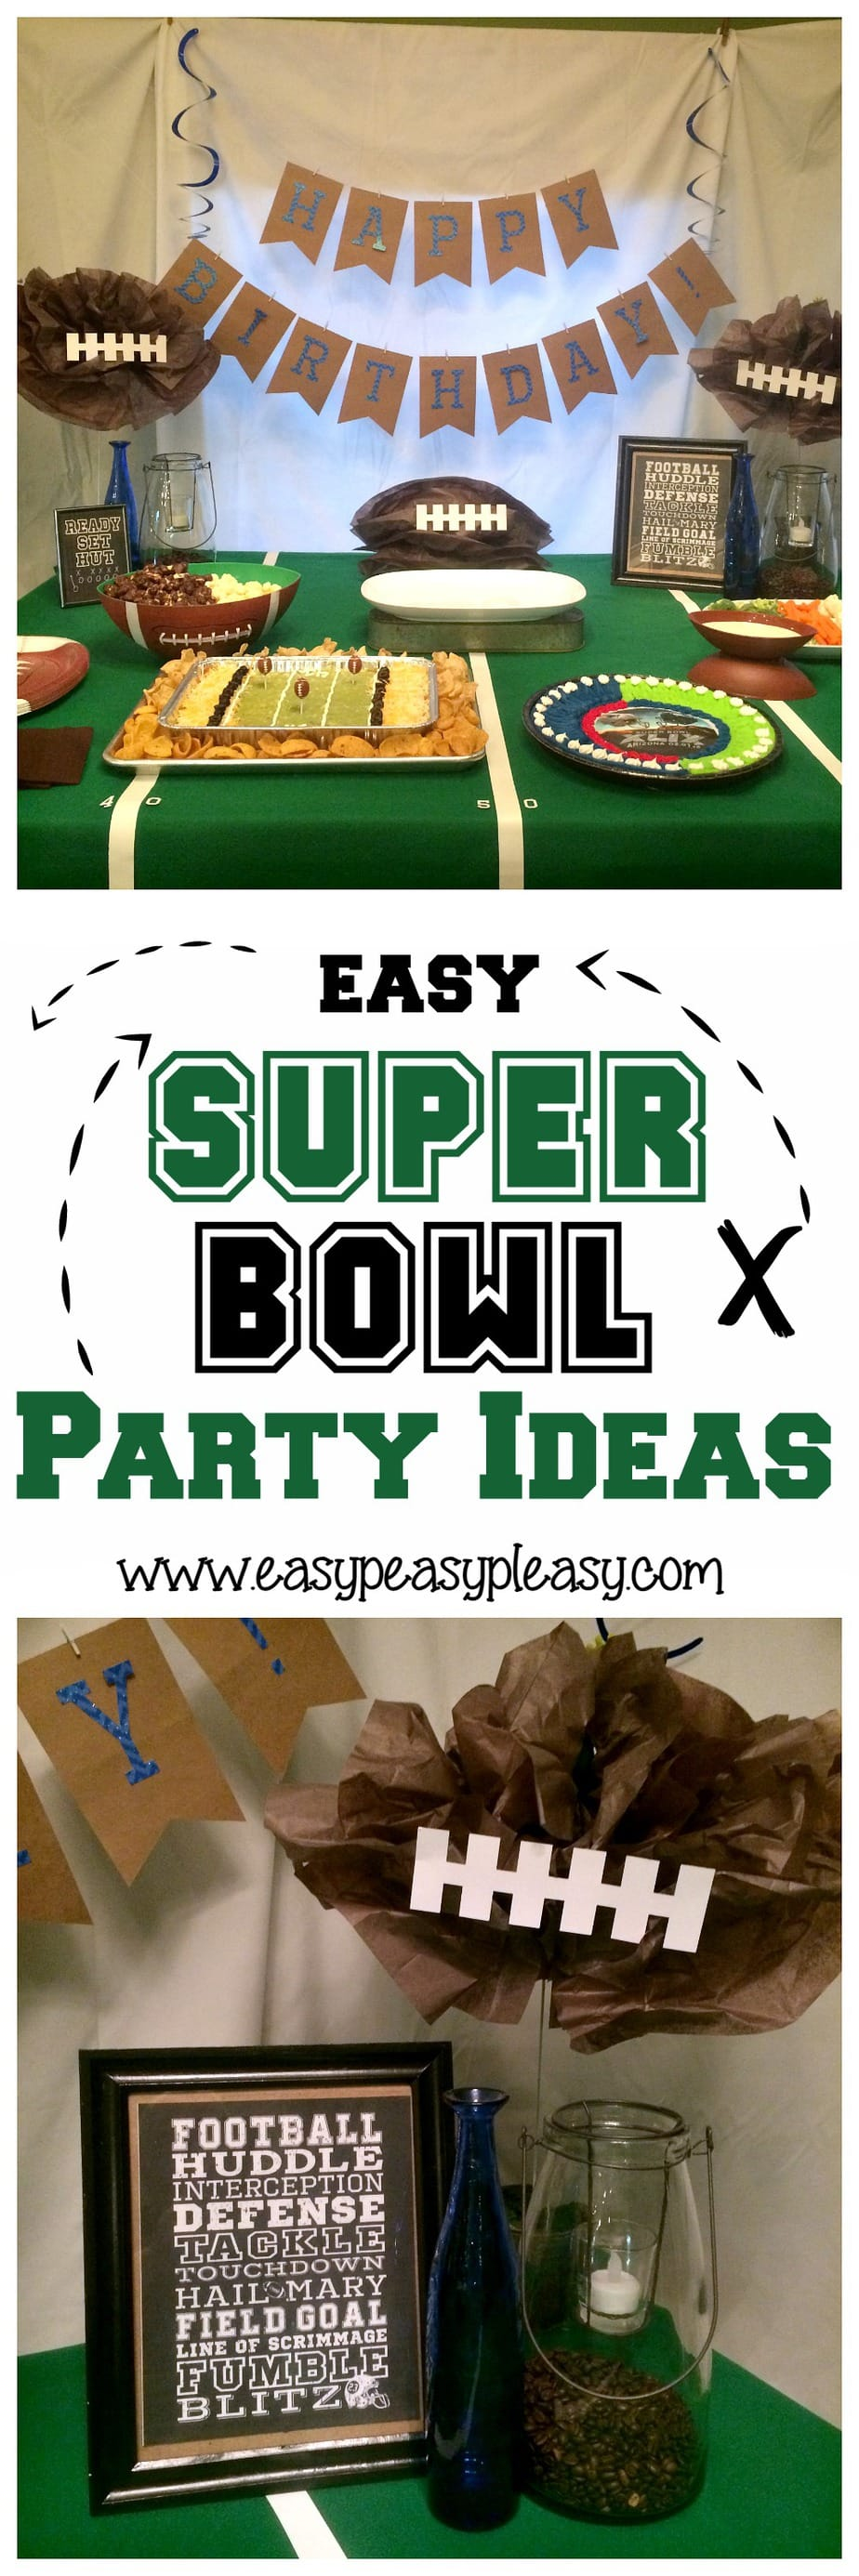 Easy and Inexpensive Super Bowl Party ideas!